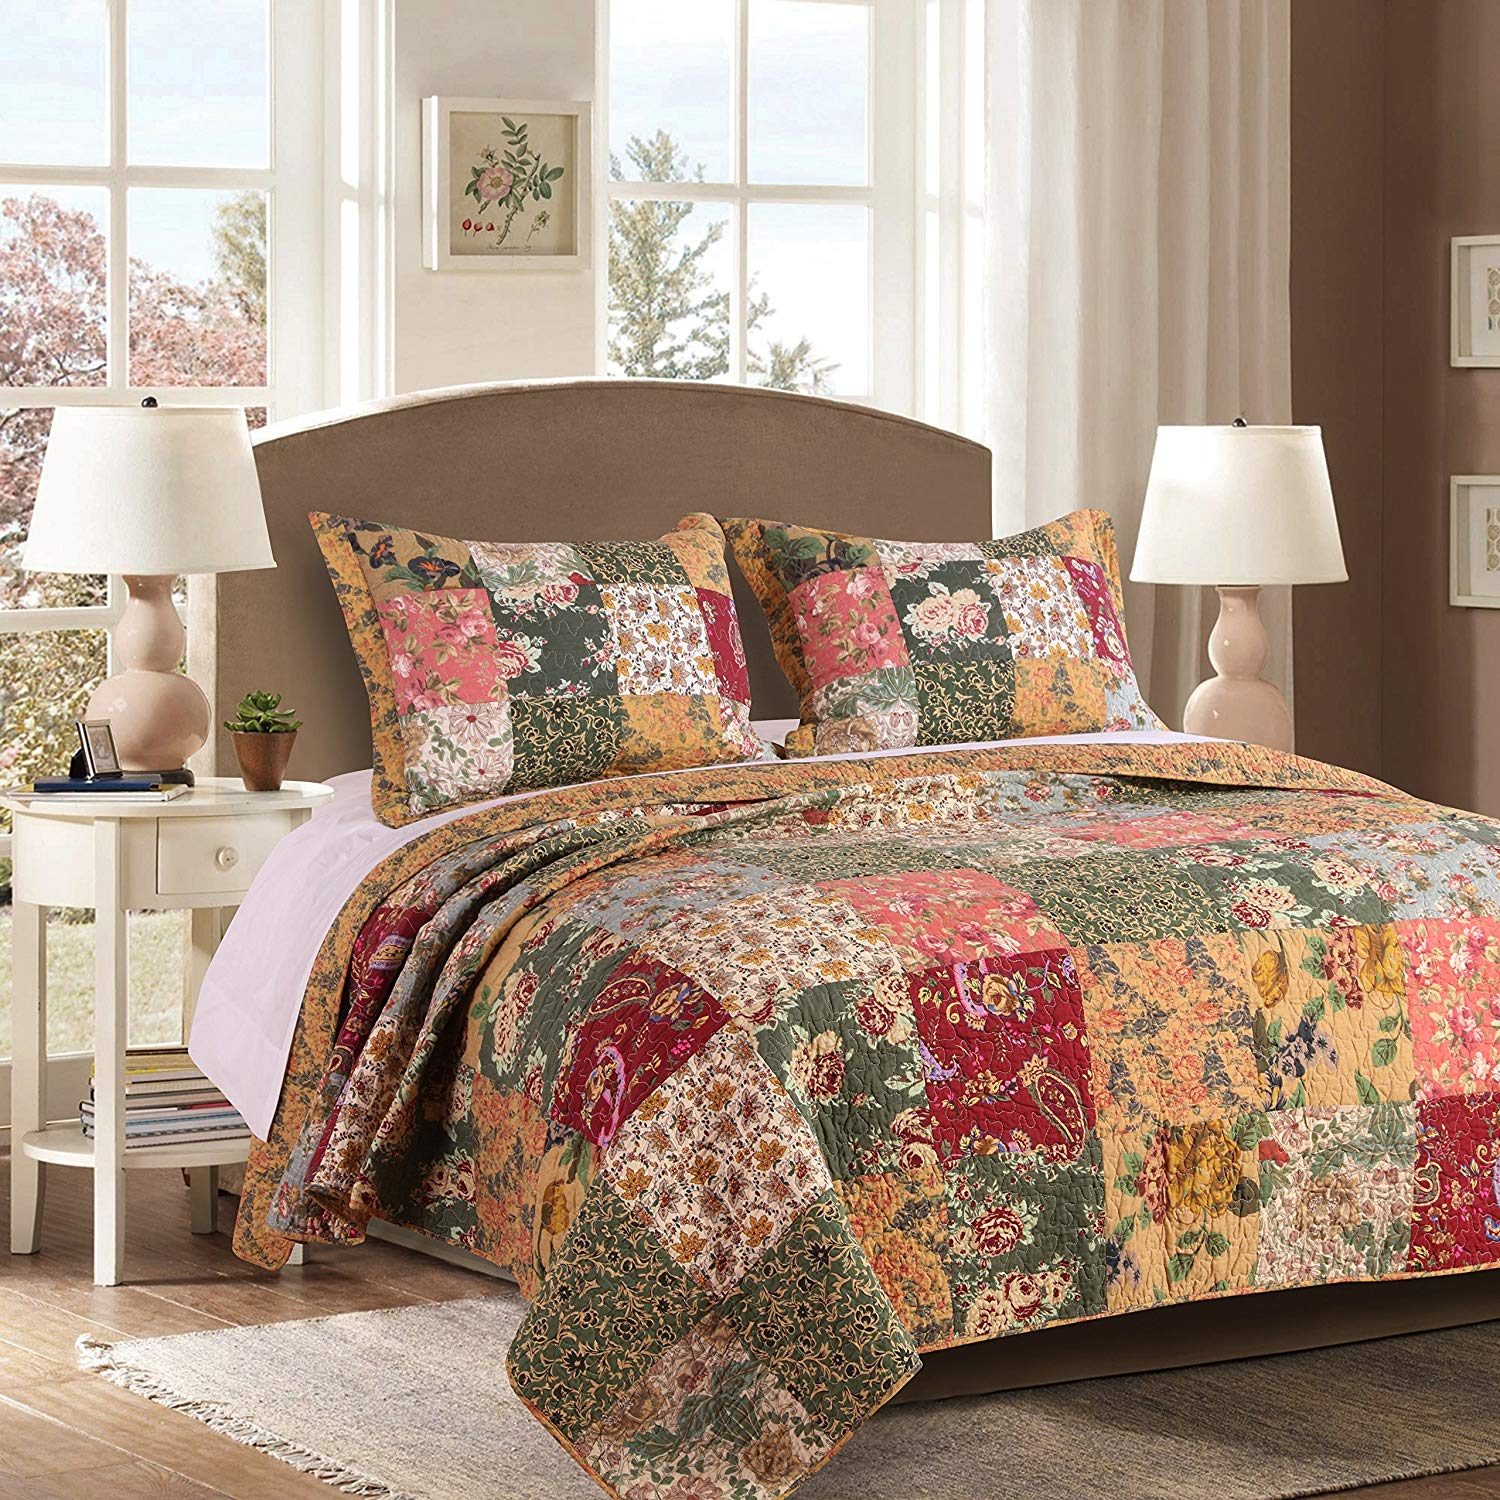 Greenland Home Antique Chic 100% Cotton Authentic Patchwork Quilt Set